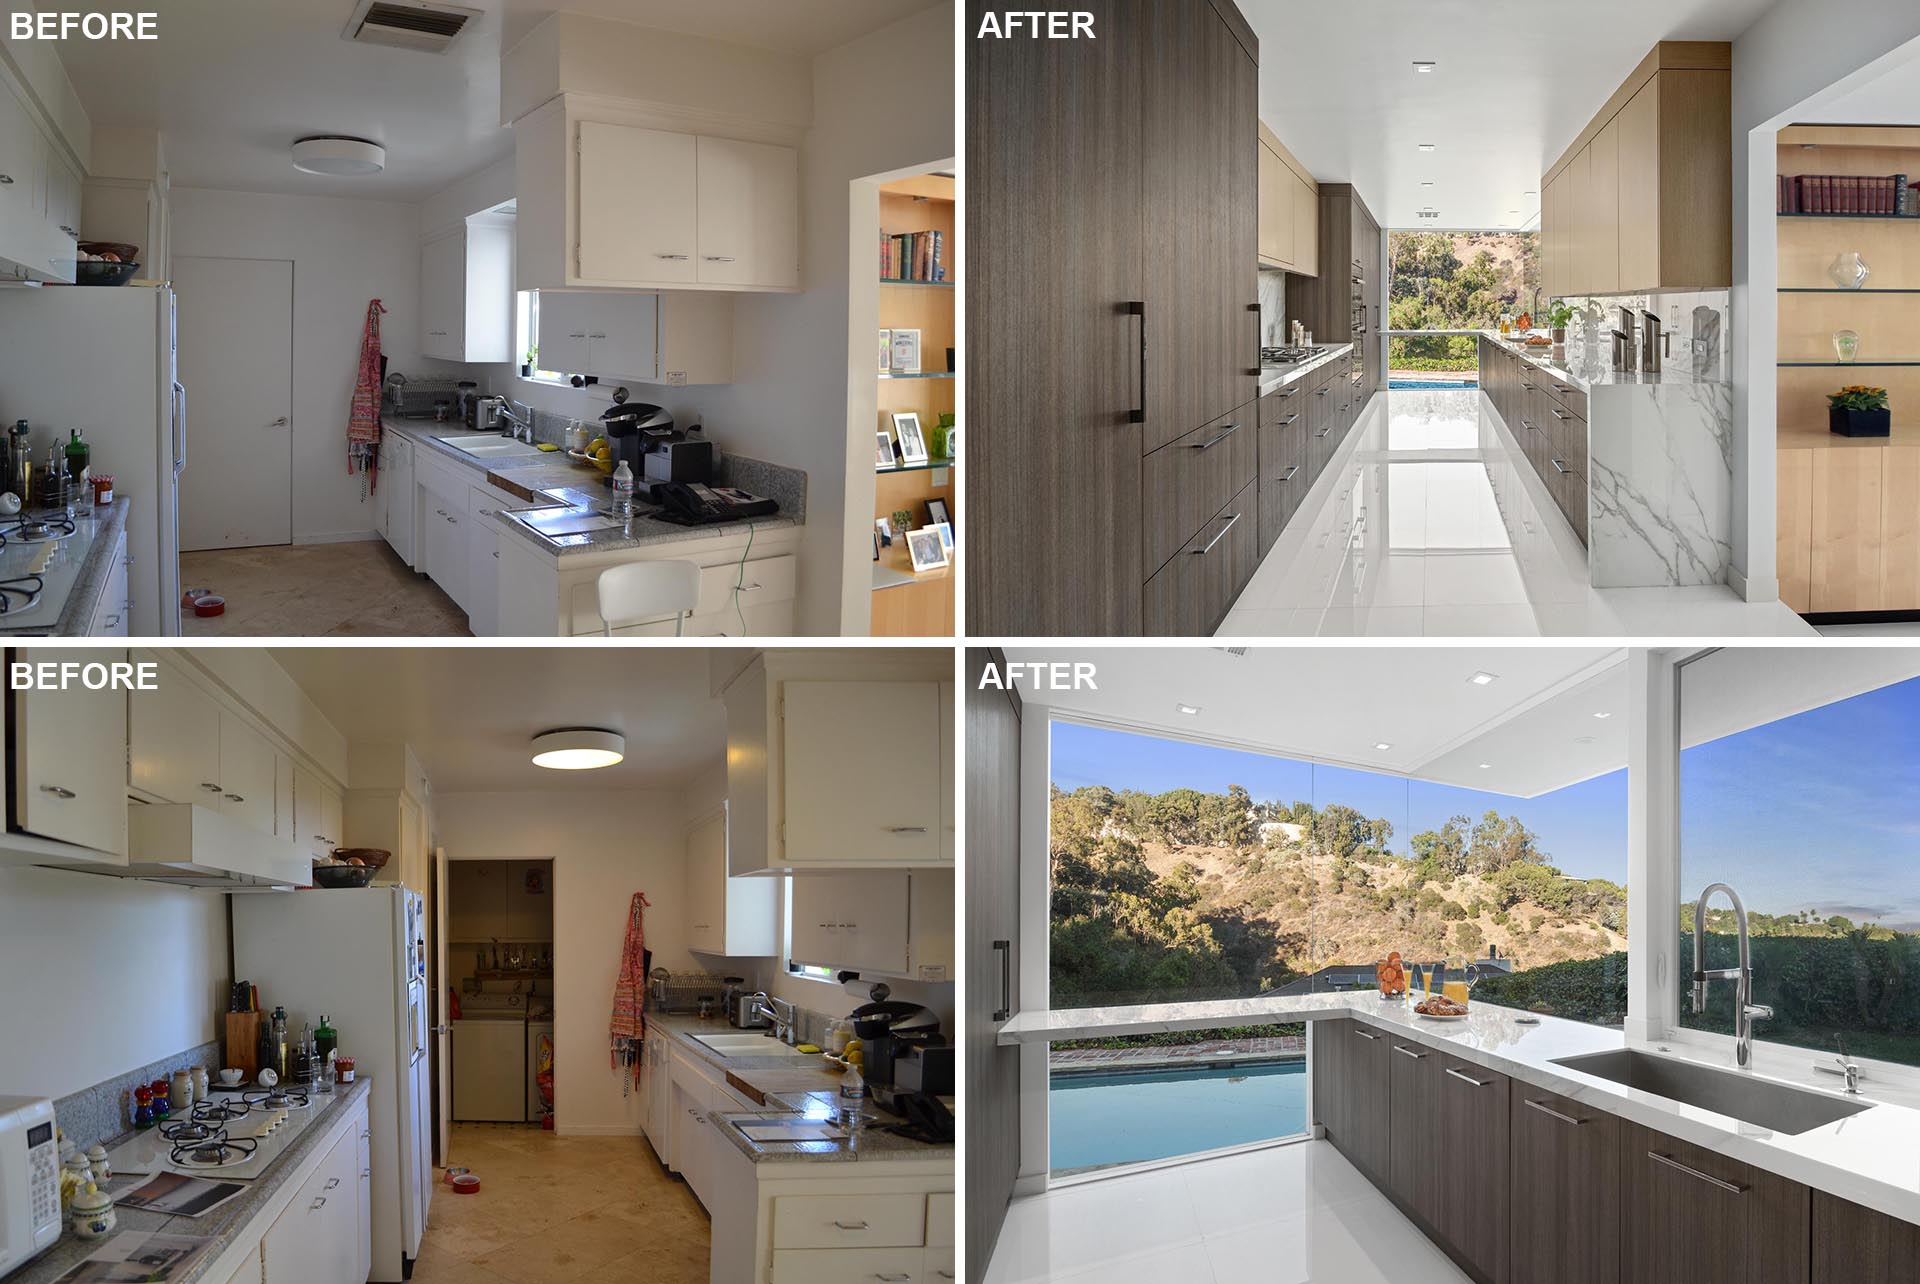 This modern kitchen remodel included removing the far wall, which was once the laundry room, and adding floor-to-ceiling windows that provide natural light and views of the landscape and pool.